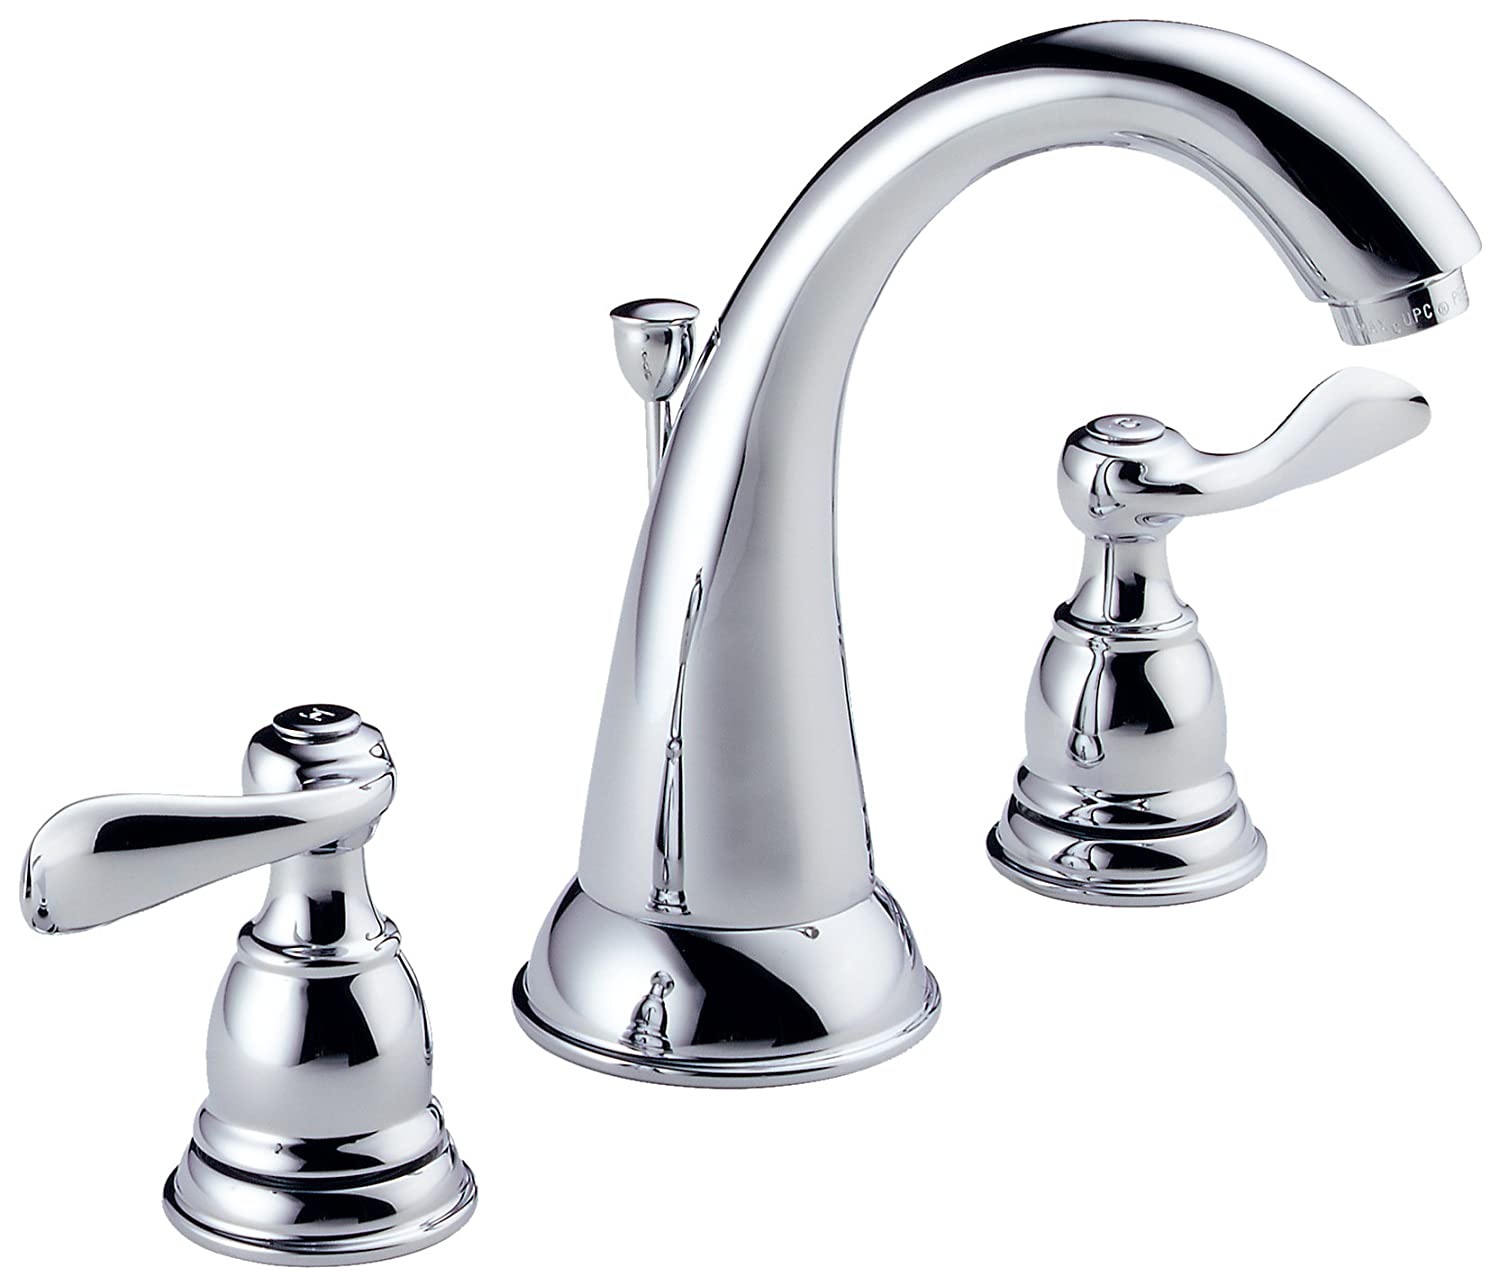 Delta B3596LF Windemere 2 Handle Widespread Bathroom Faucet With Metal  Drain Assembly, Chrome   Touch On Bathroom Sink Faucets   Amazon.com